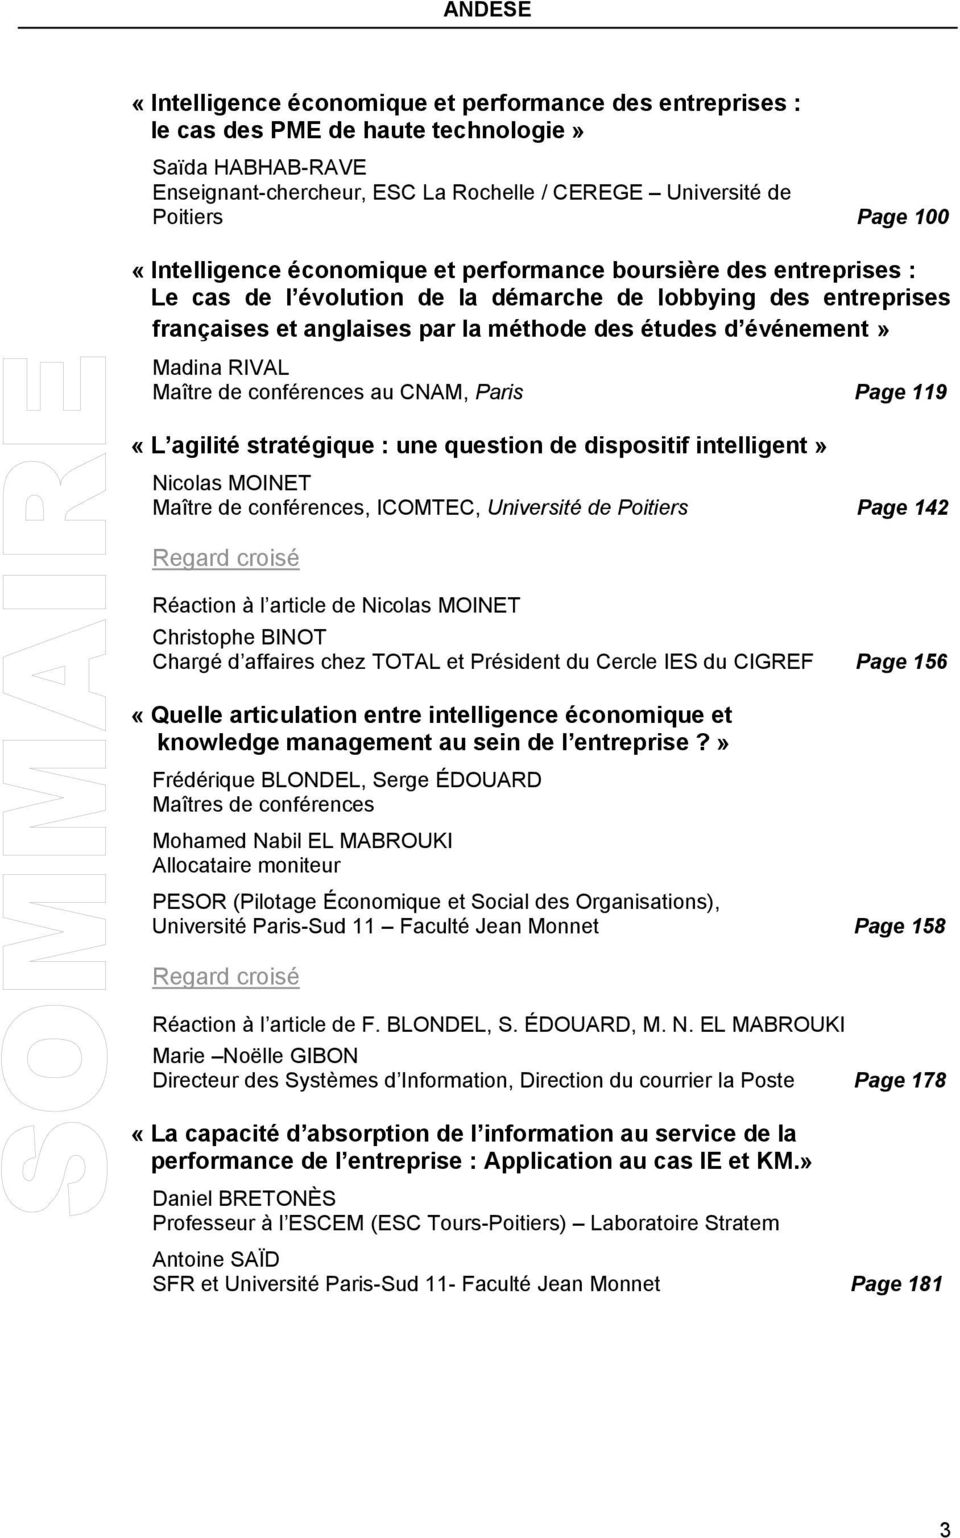 Madina RIVAL Maître de conférences au CNAM, Paris Page 119 «L agilité stratégique : une question de dispositif intelligent» Nicolas MOINET Maître de conférences, ICOMTEC, Université de Poitiers Page